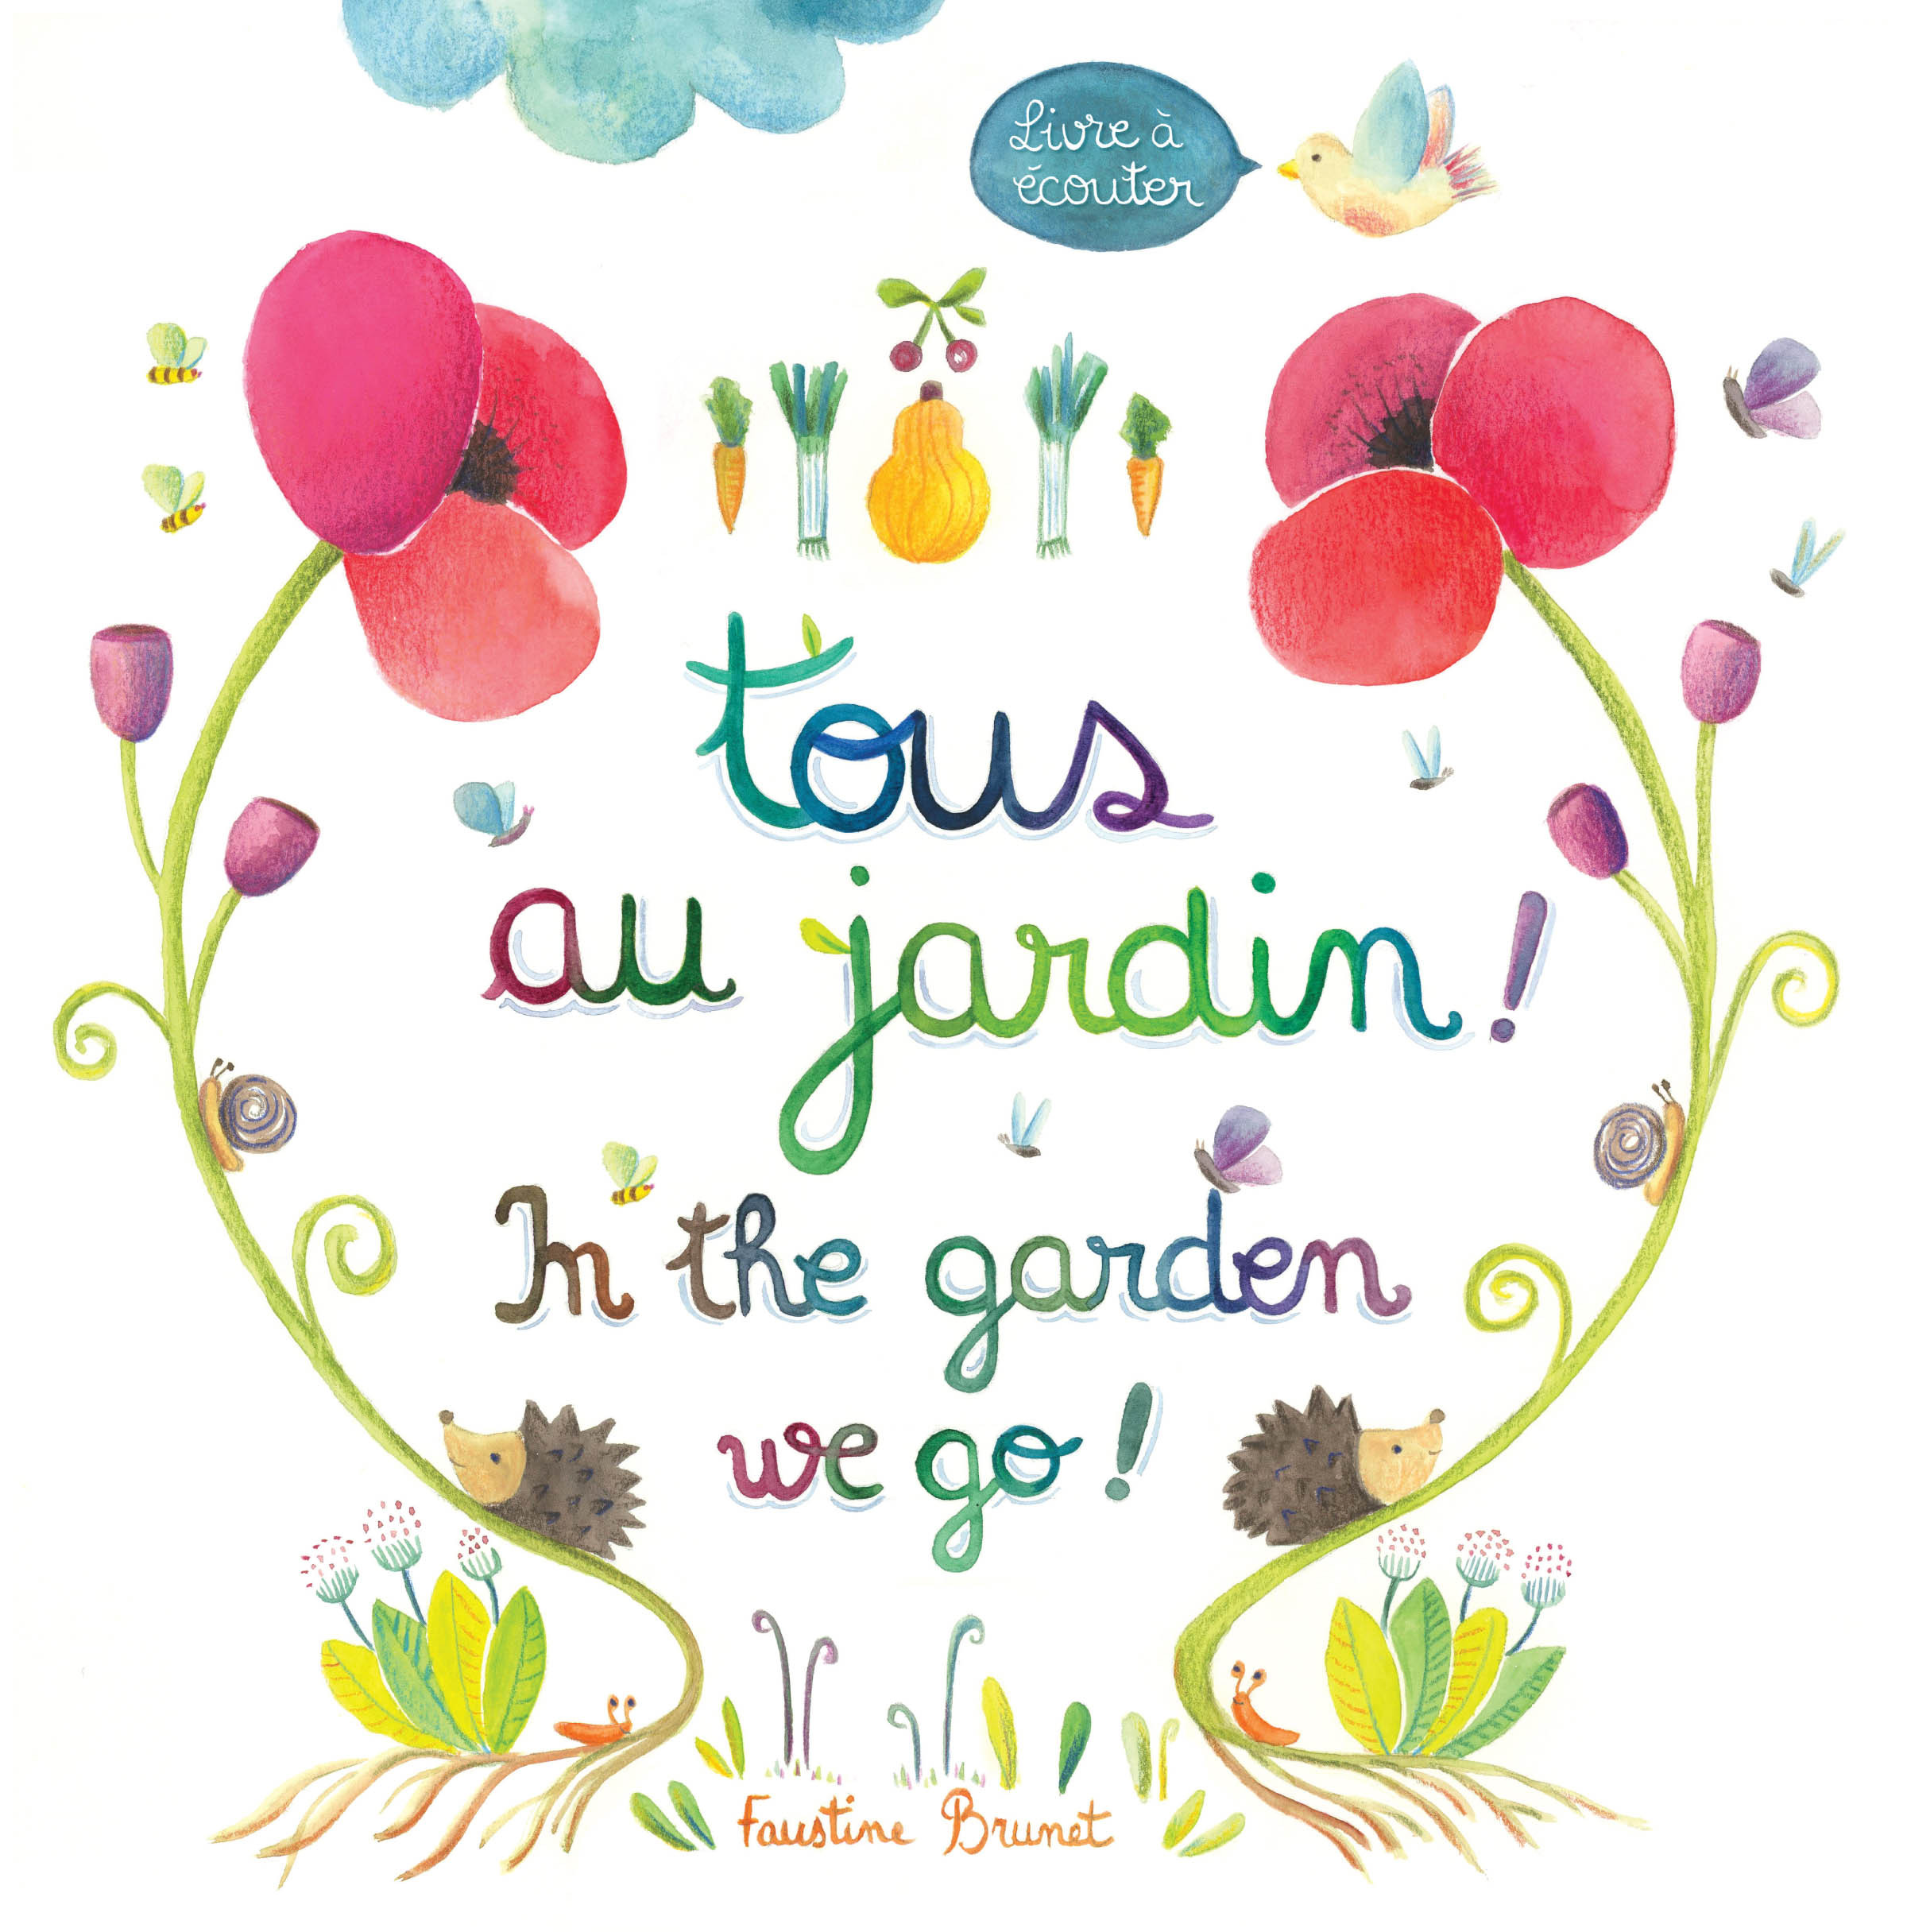 TOUS AU JARDIN! IN THE GARDEN WE GO